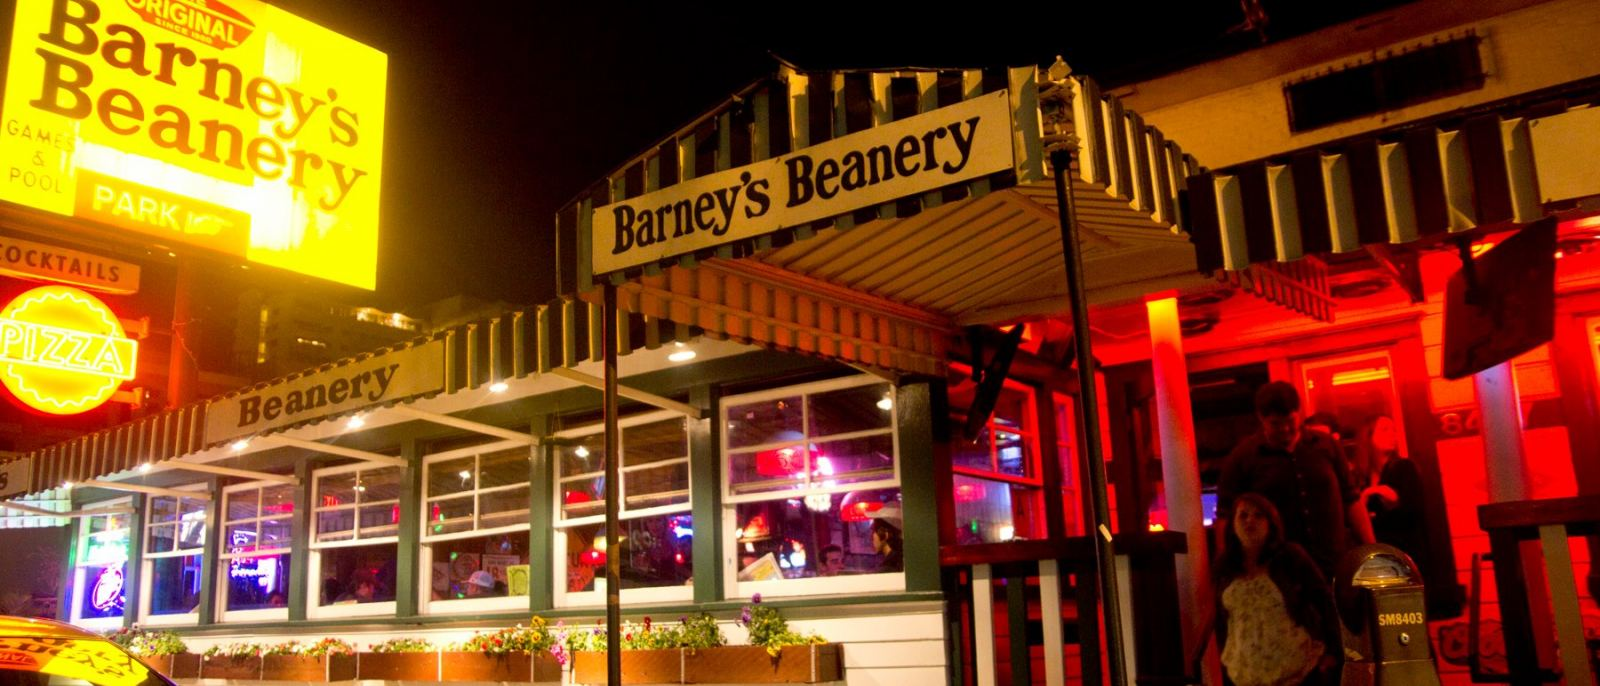 Barney's Beanery in West Hollywood